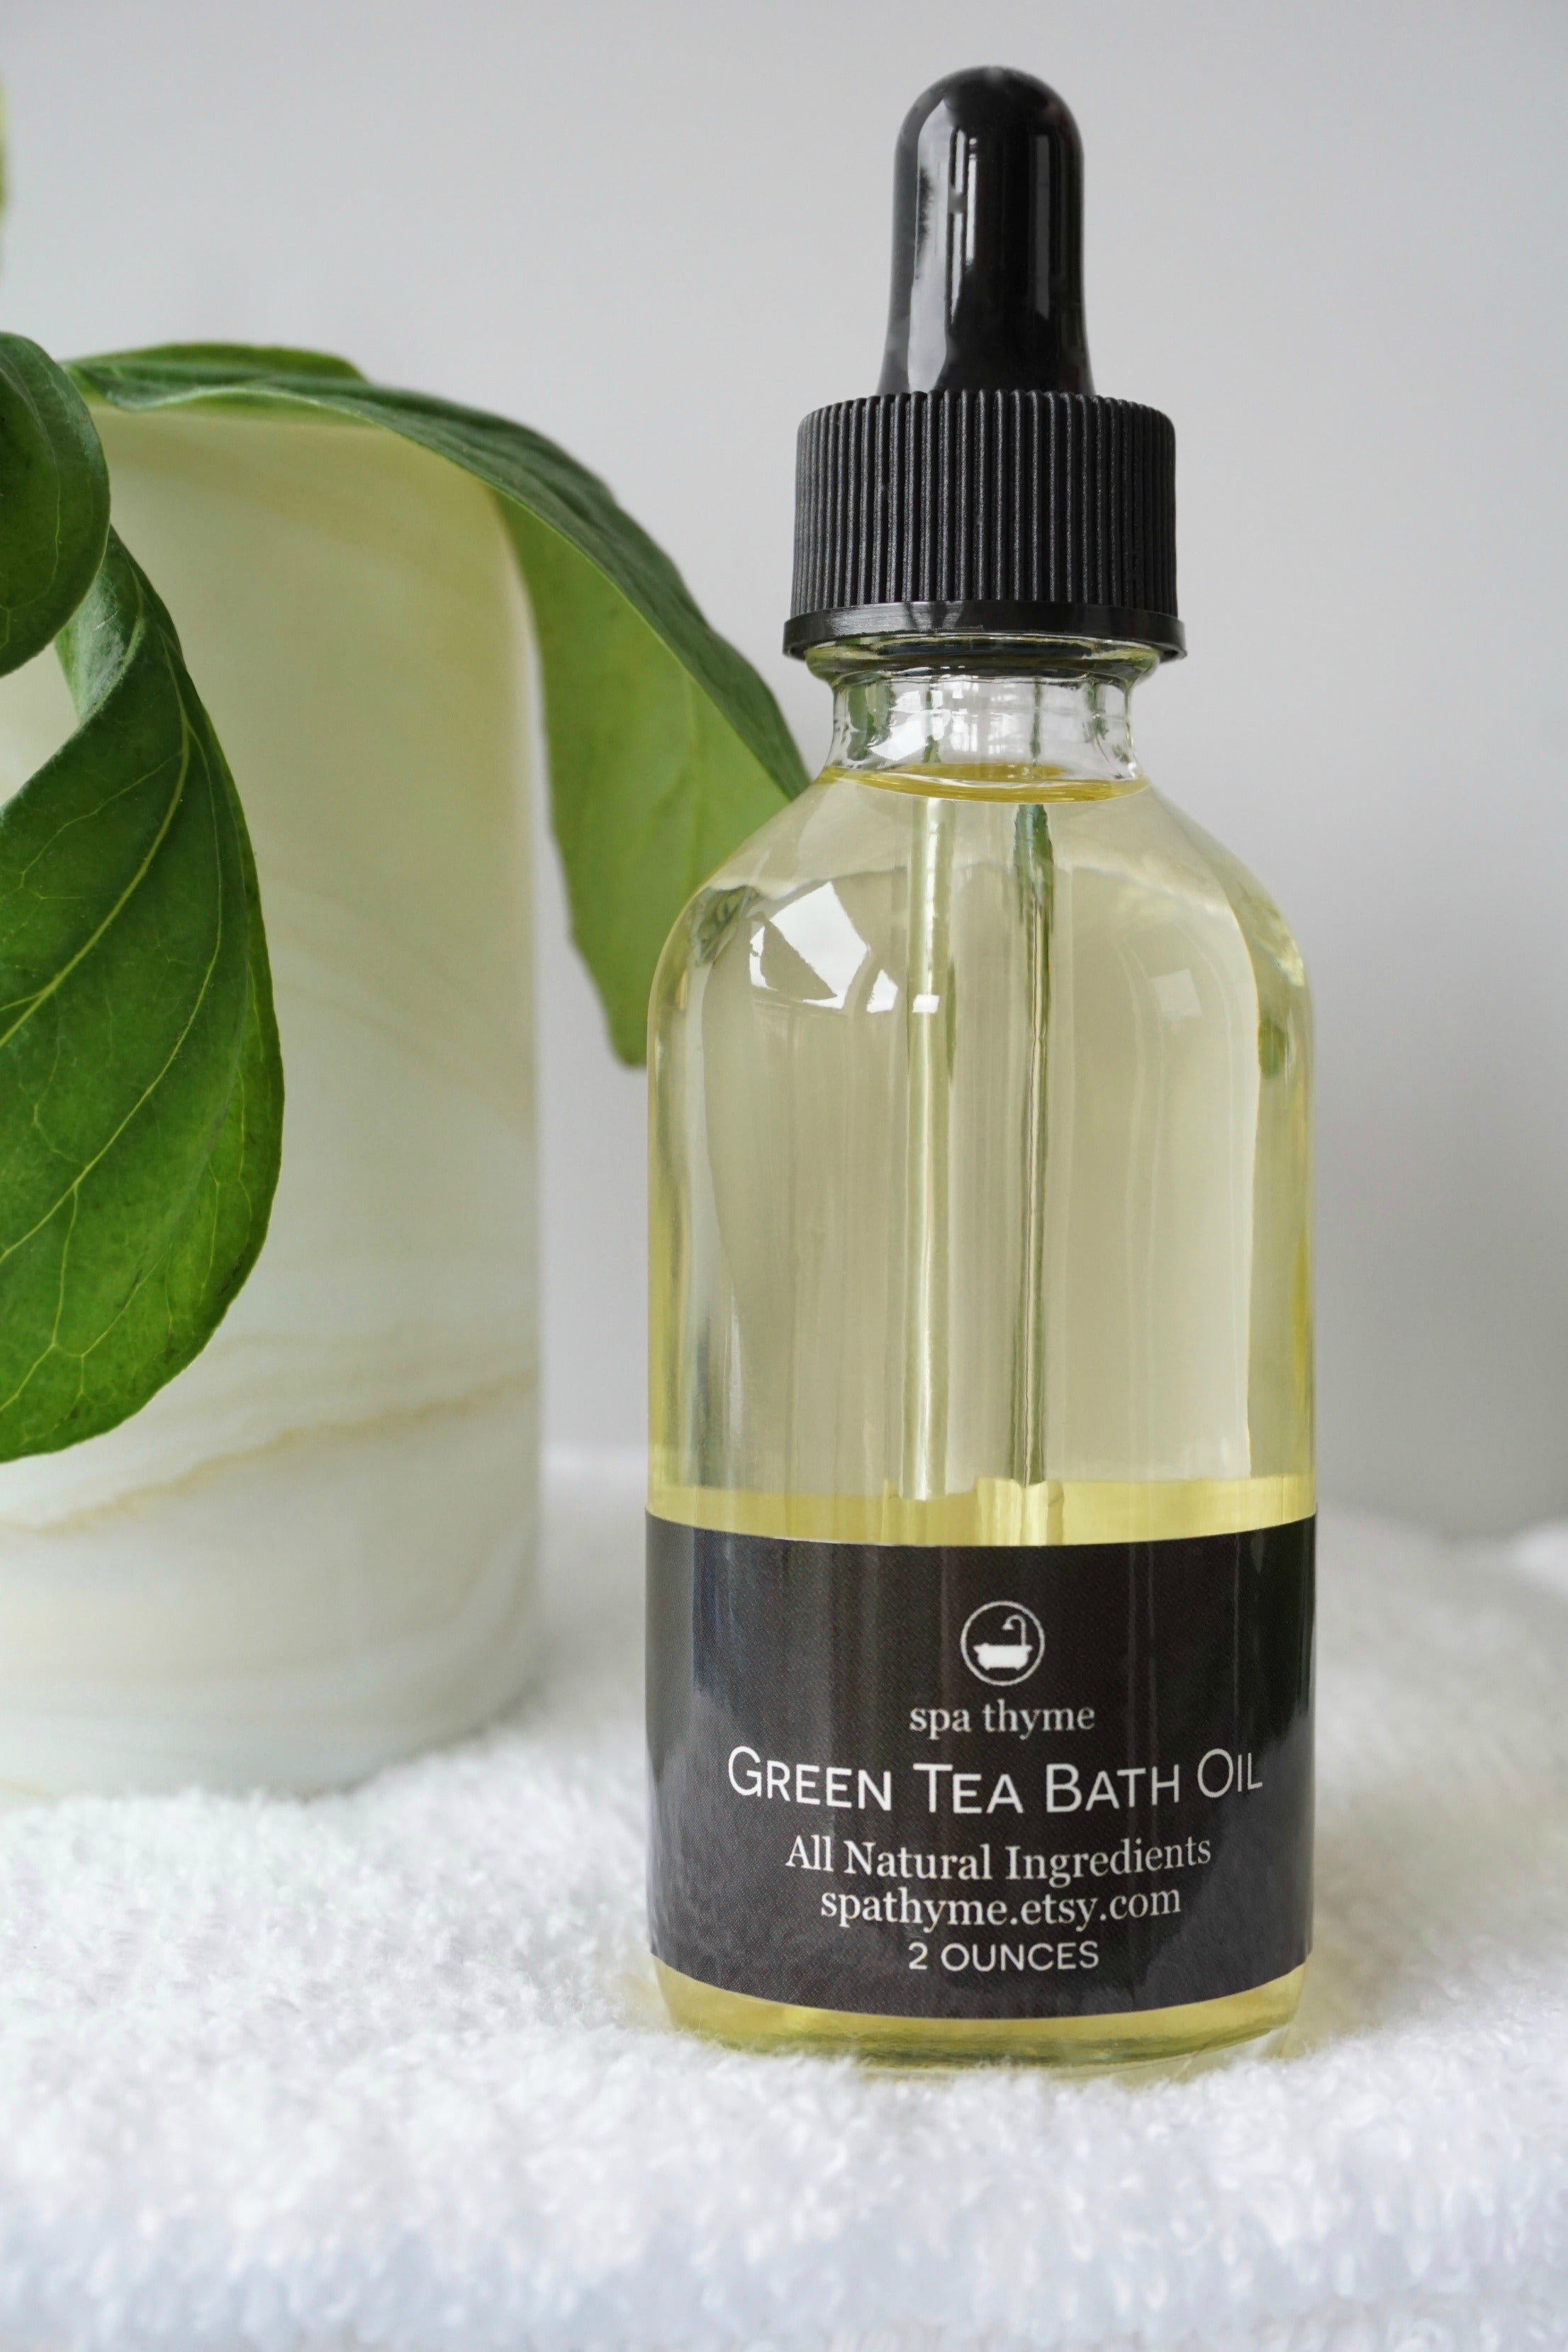 Bath oil - green tea bath oil - tea gifts - soothing bath oils - natural bath oil